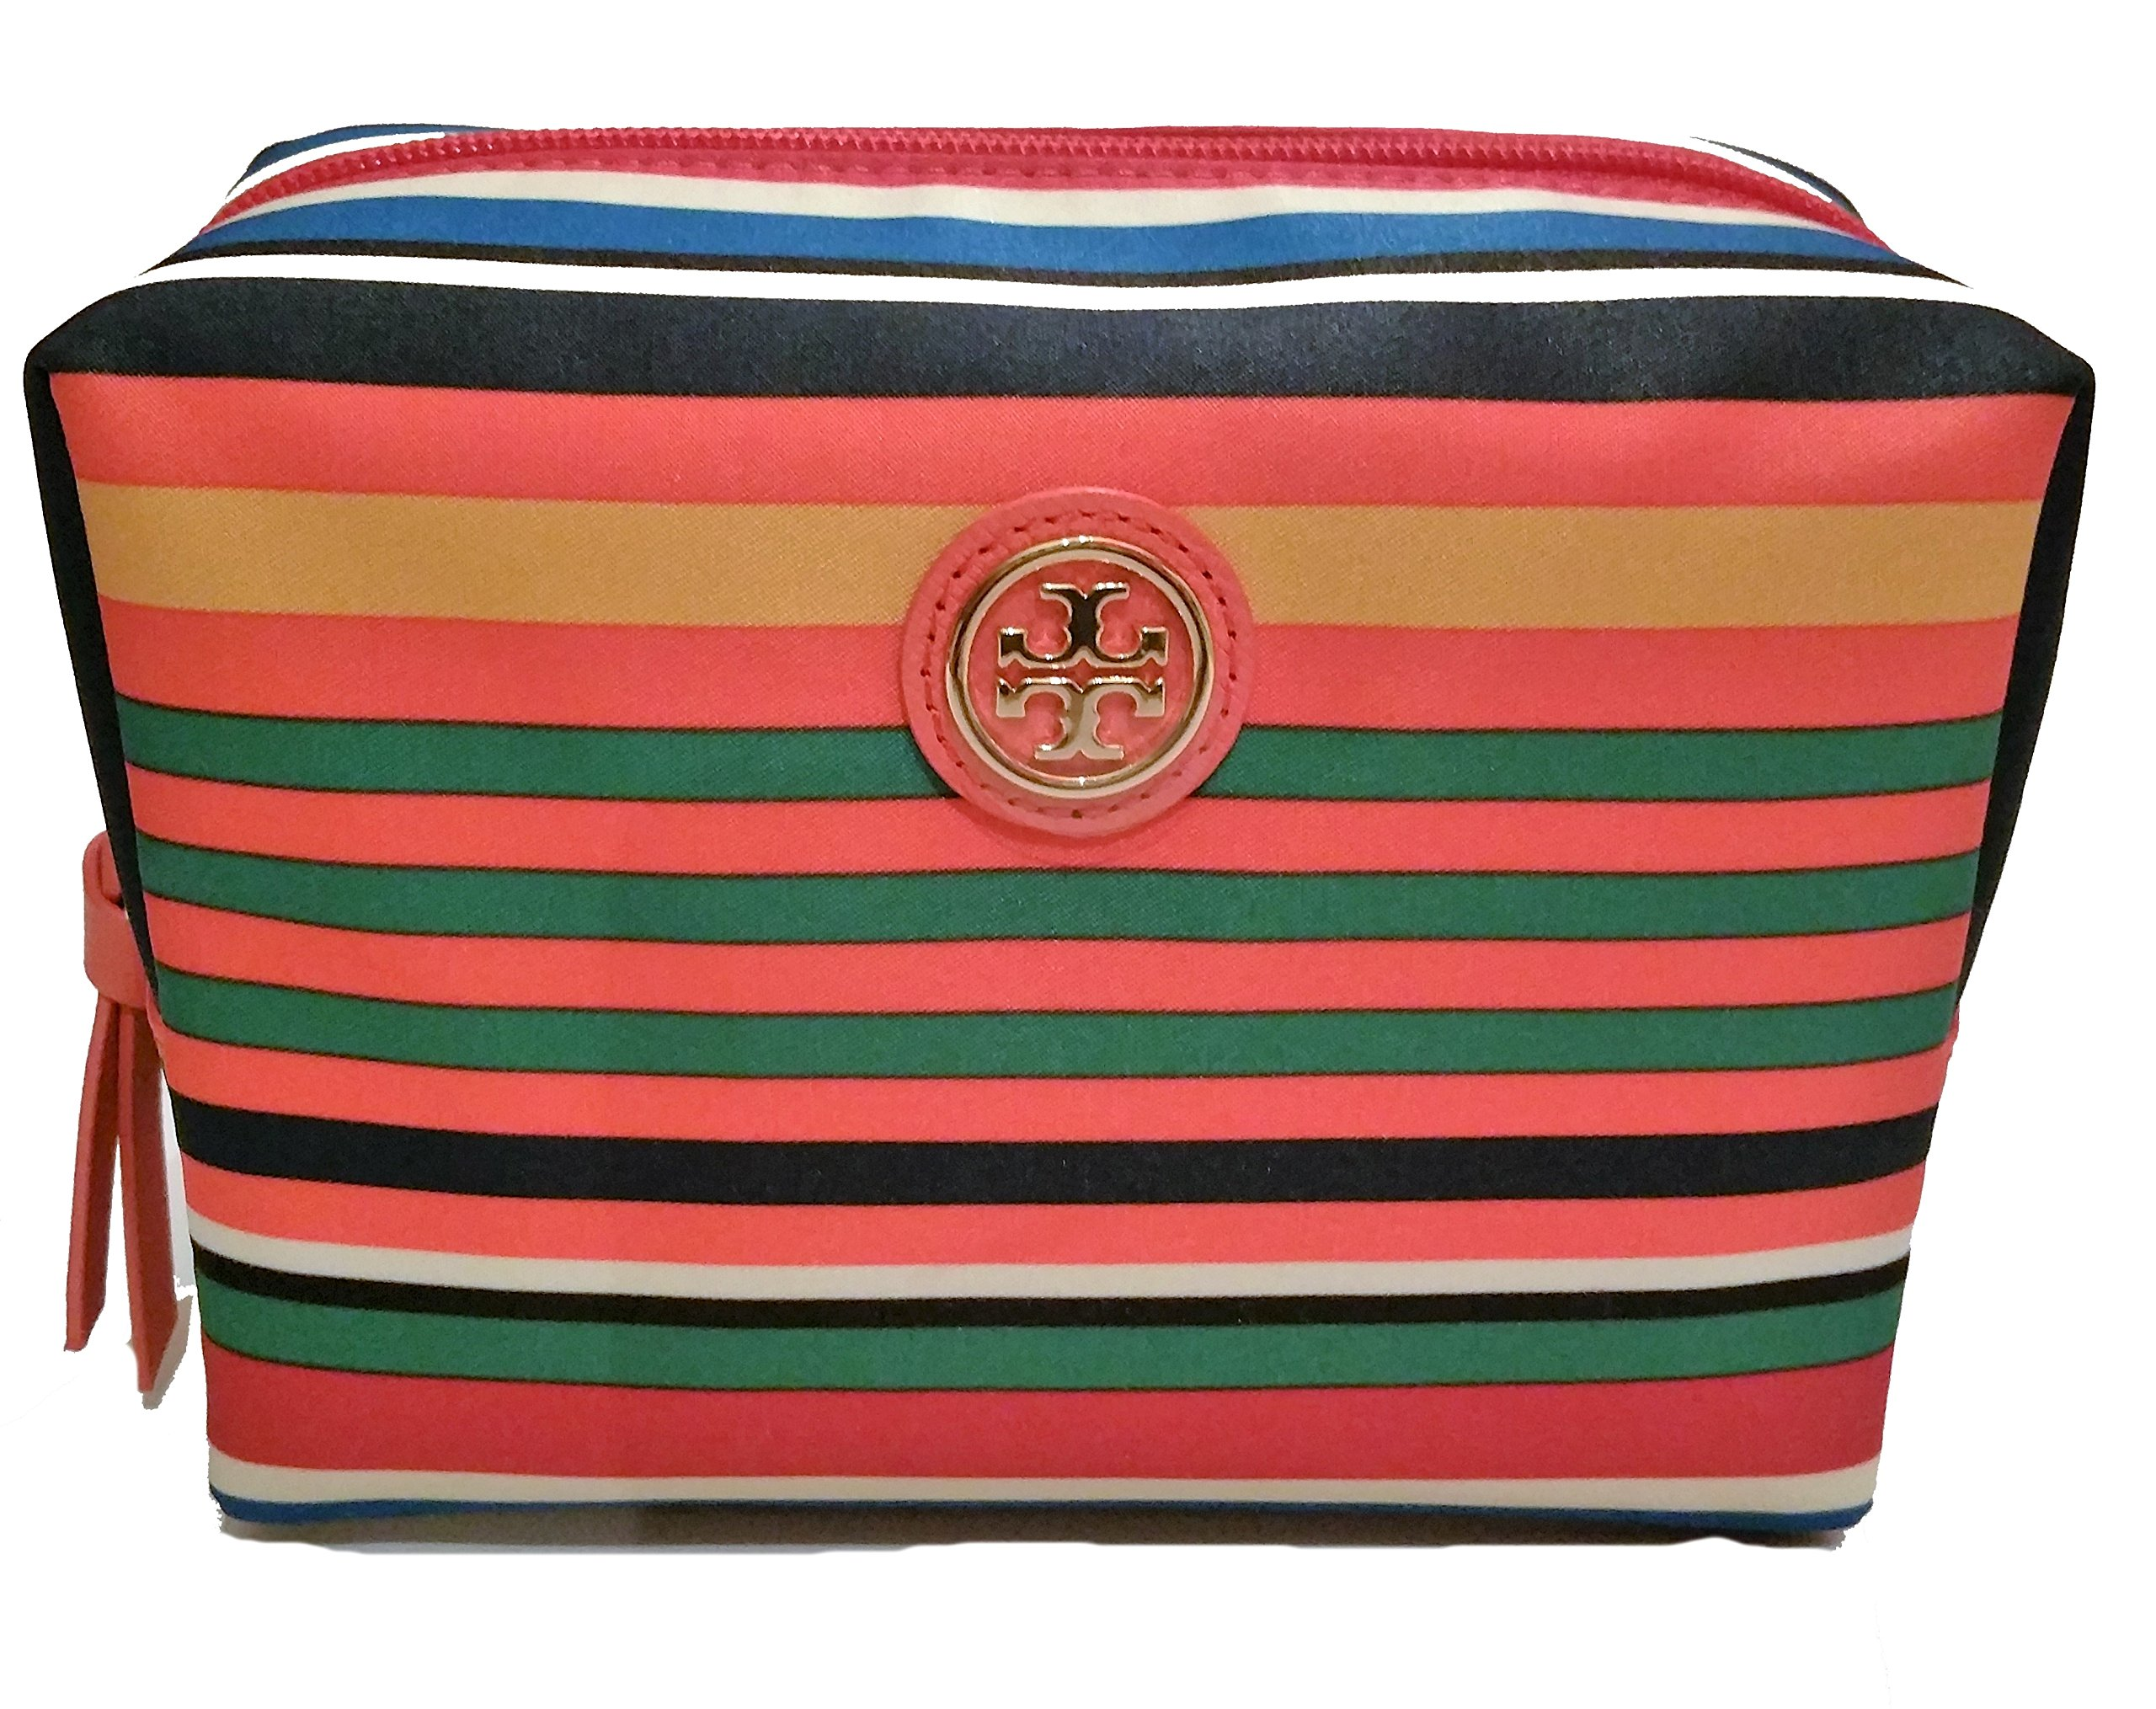 Tory Burch Women's Printed Nylon Brigitte Cosmetic Case, Multi Stripe, One Size